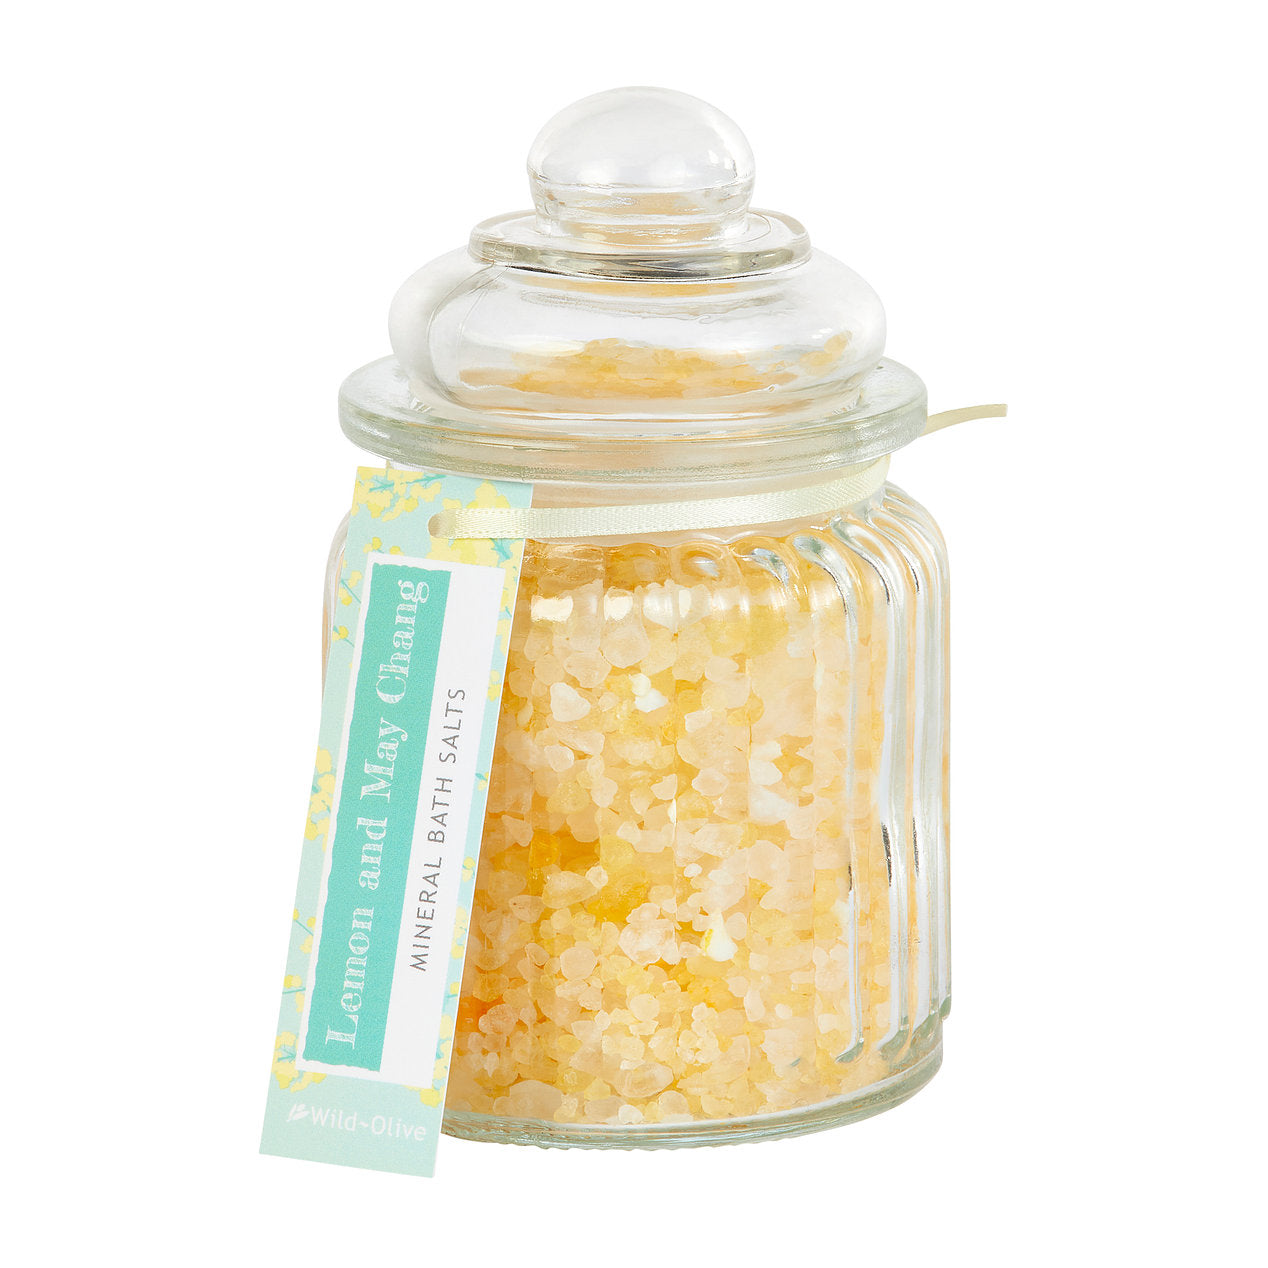 Lemon & Maychang Bath Salts